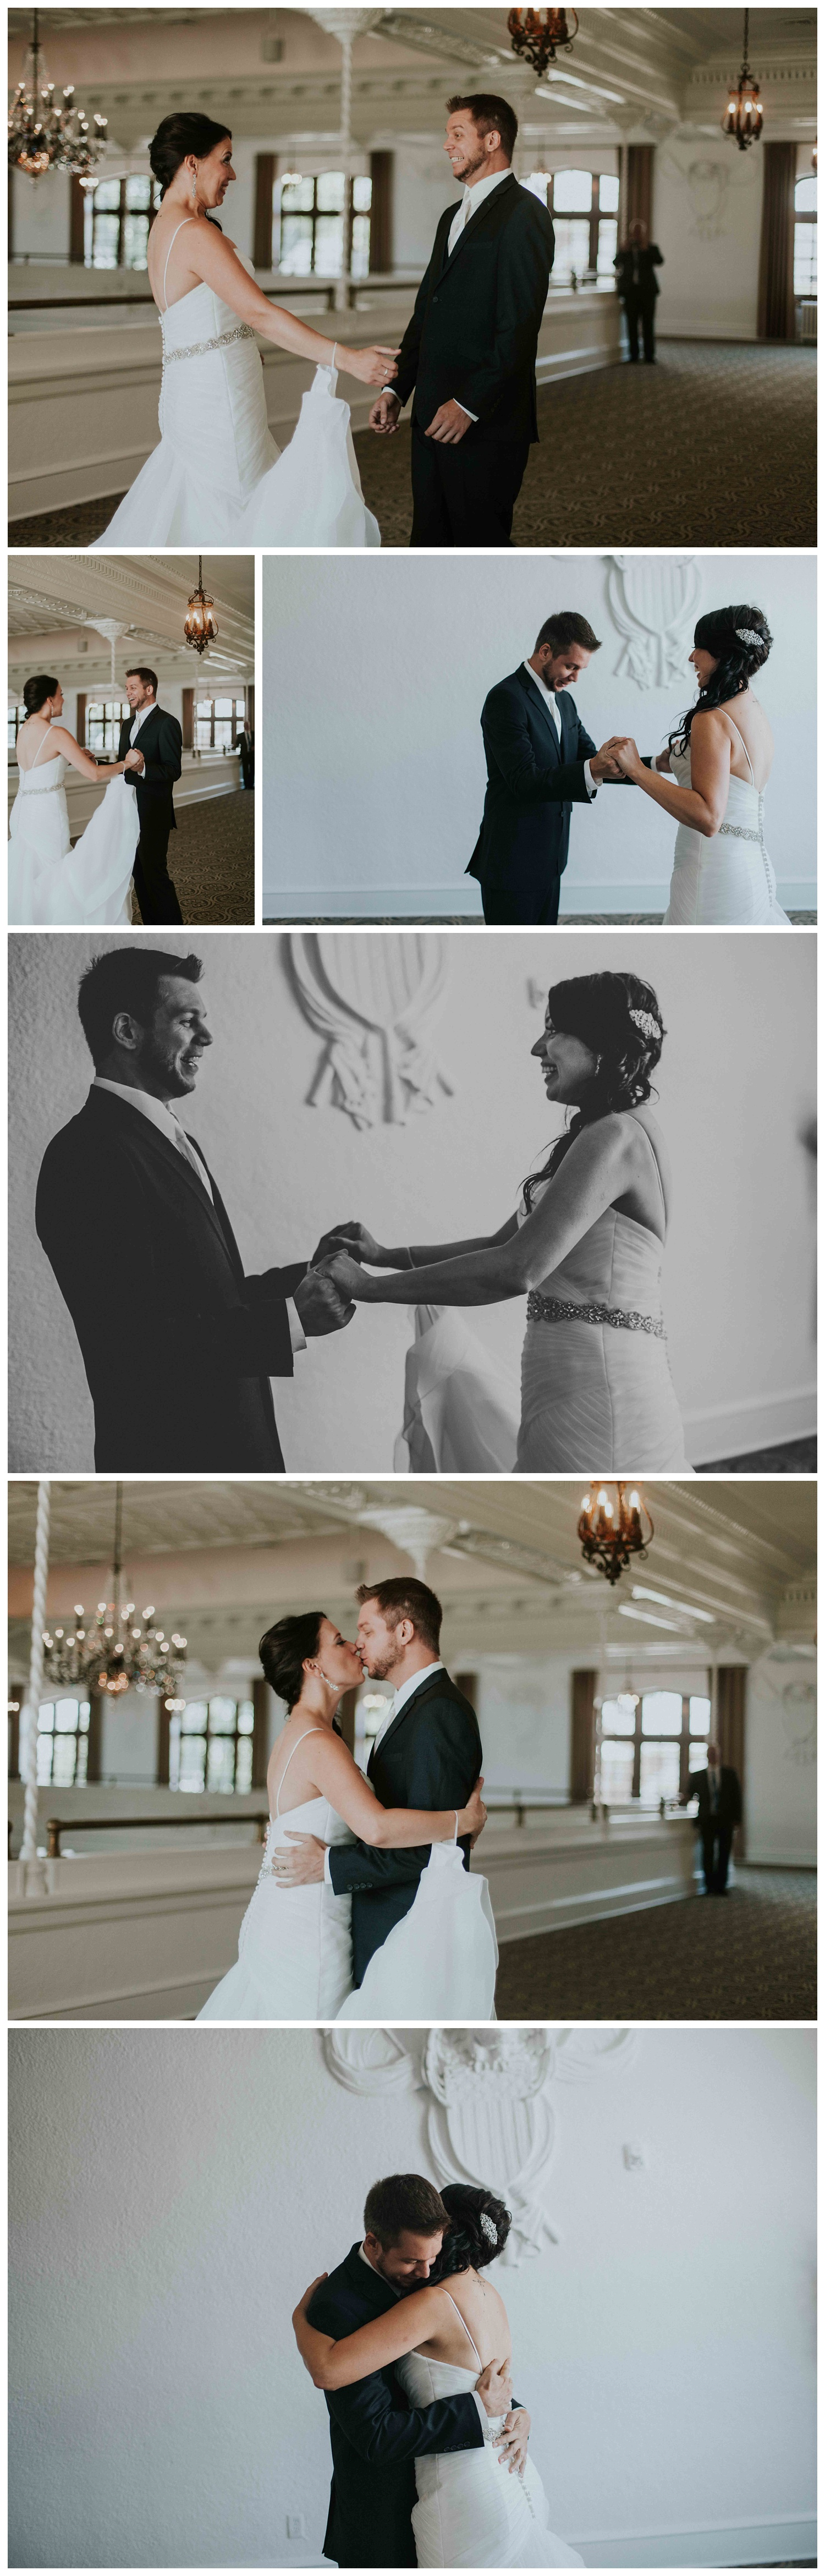 Classic Vintage Wedding The Howard Oshkosh Wisconsin Wedding Photographer Chloe Ann_0010.jpg